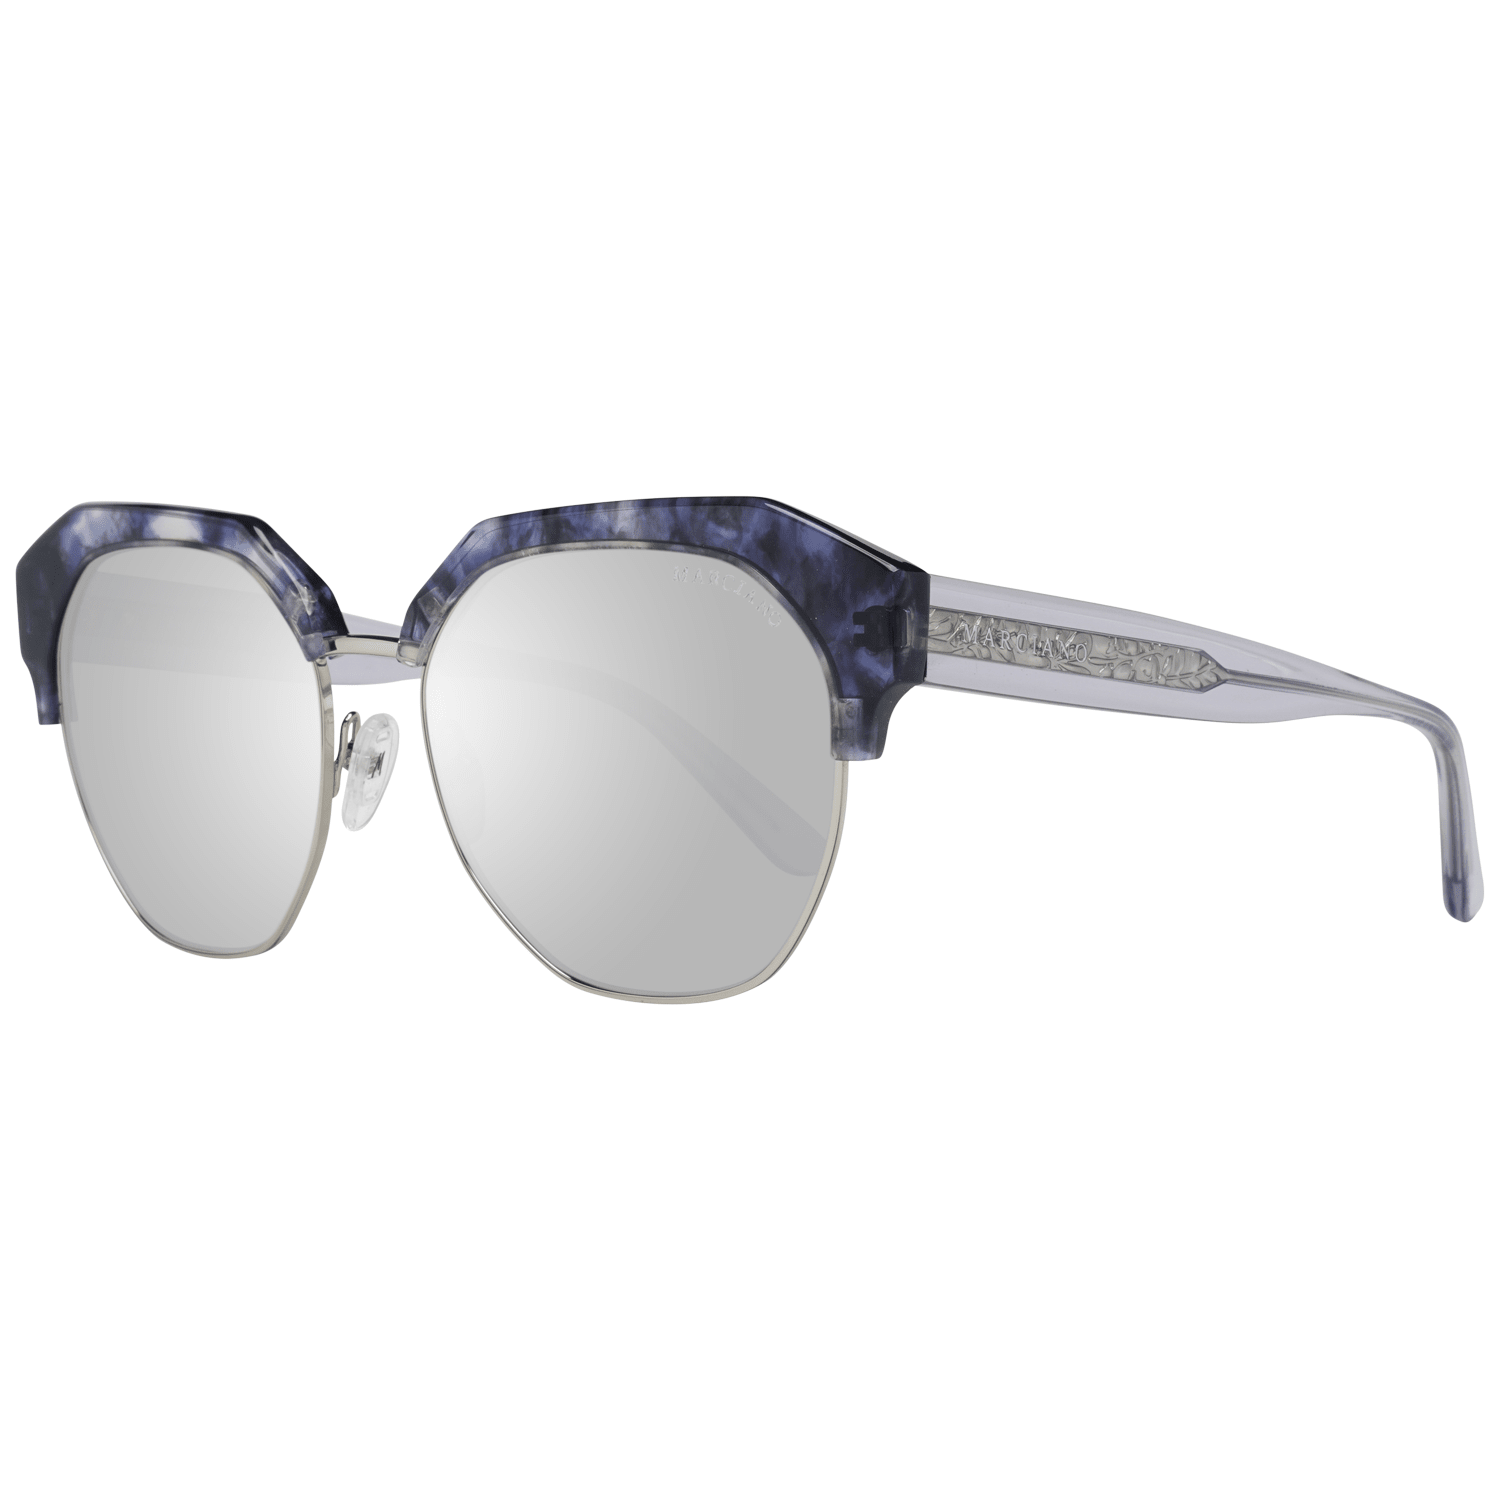 Guess By Marciano Women's Sunglasses Blue GM0798 5555B